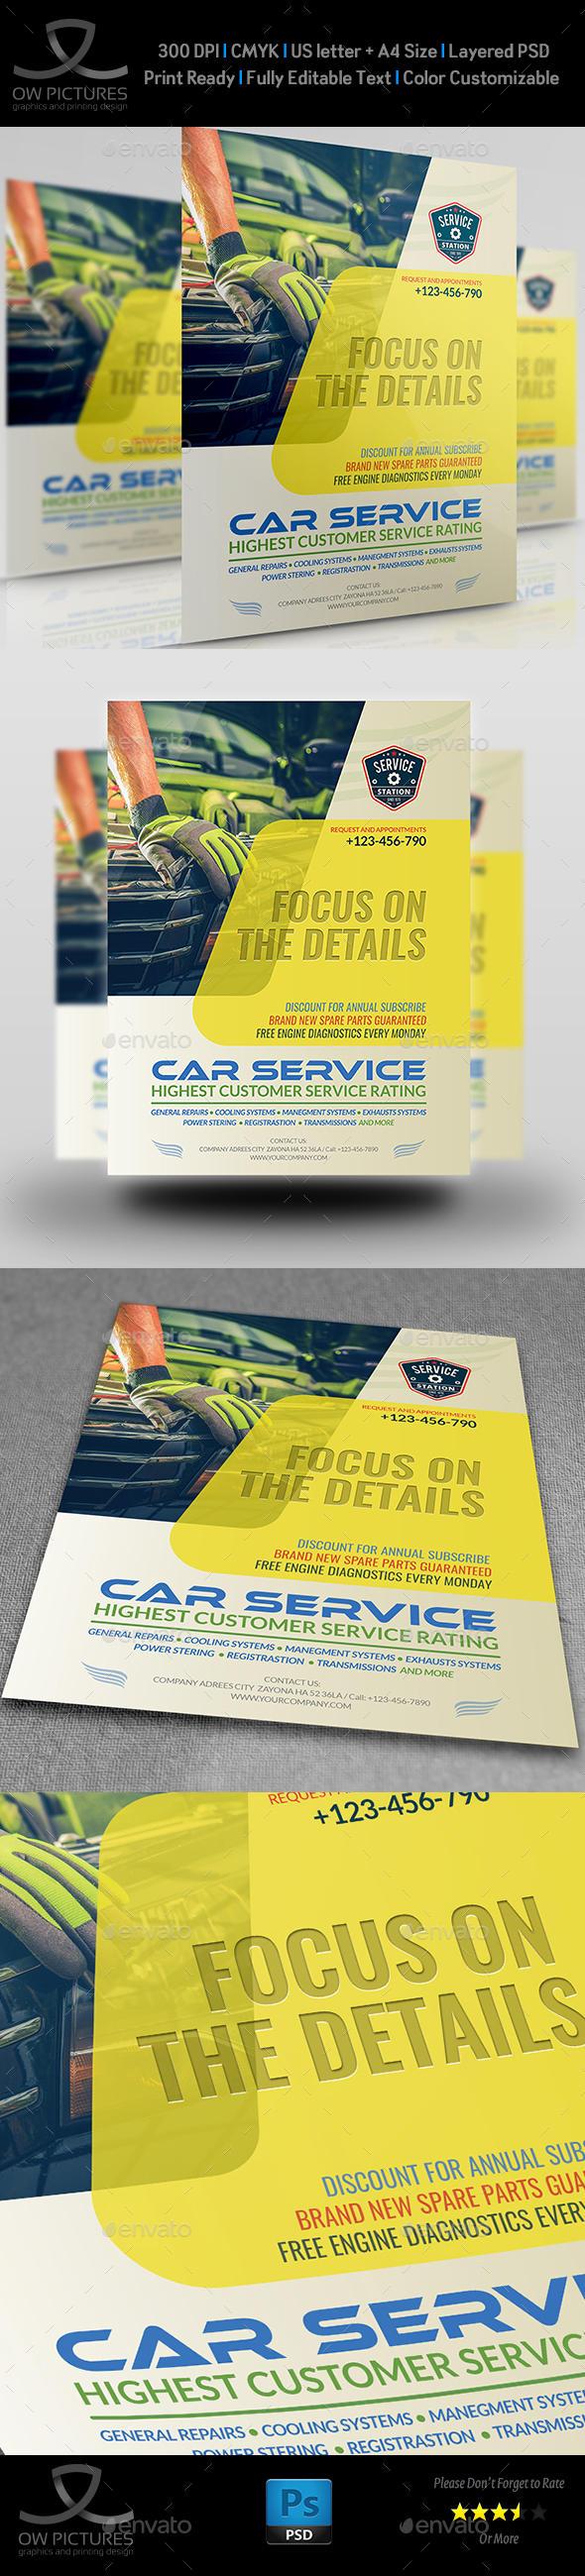 Car Services Flyer Template Vol.2 - Commerce Flyers